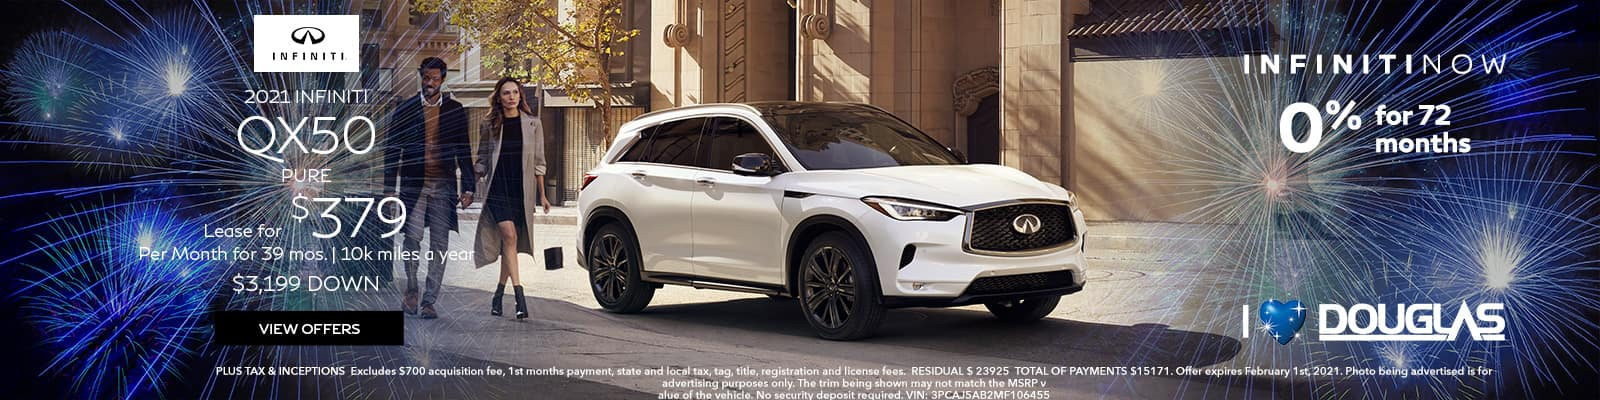 final-douglas-infiniti-january-qx50-special-banner-1600×400